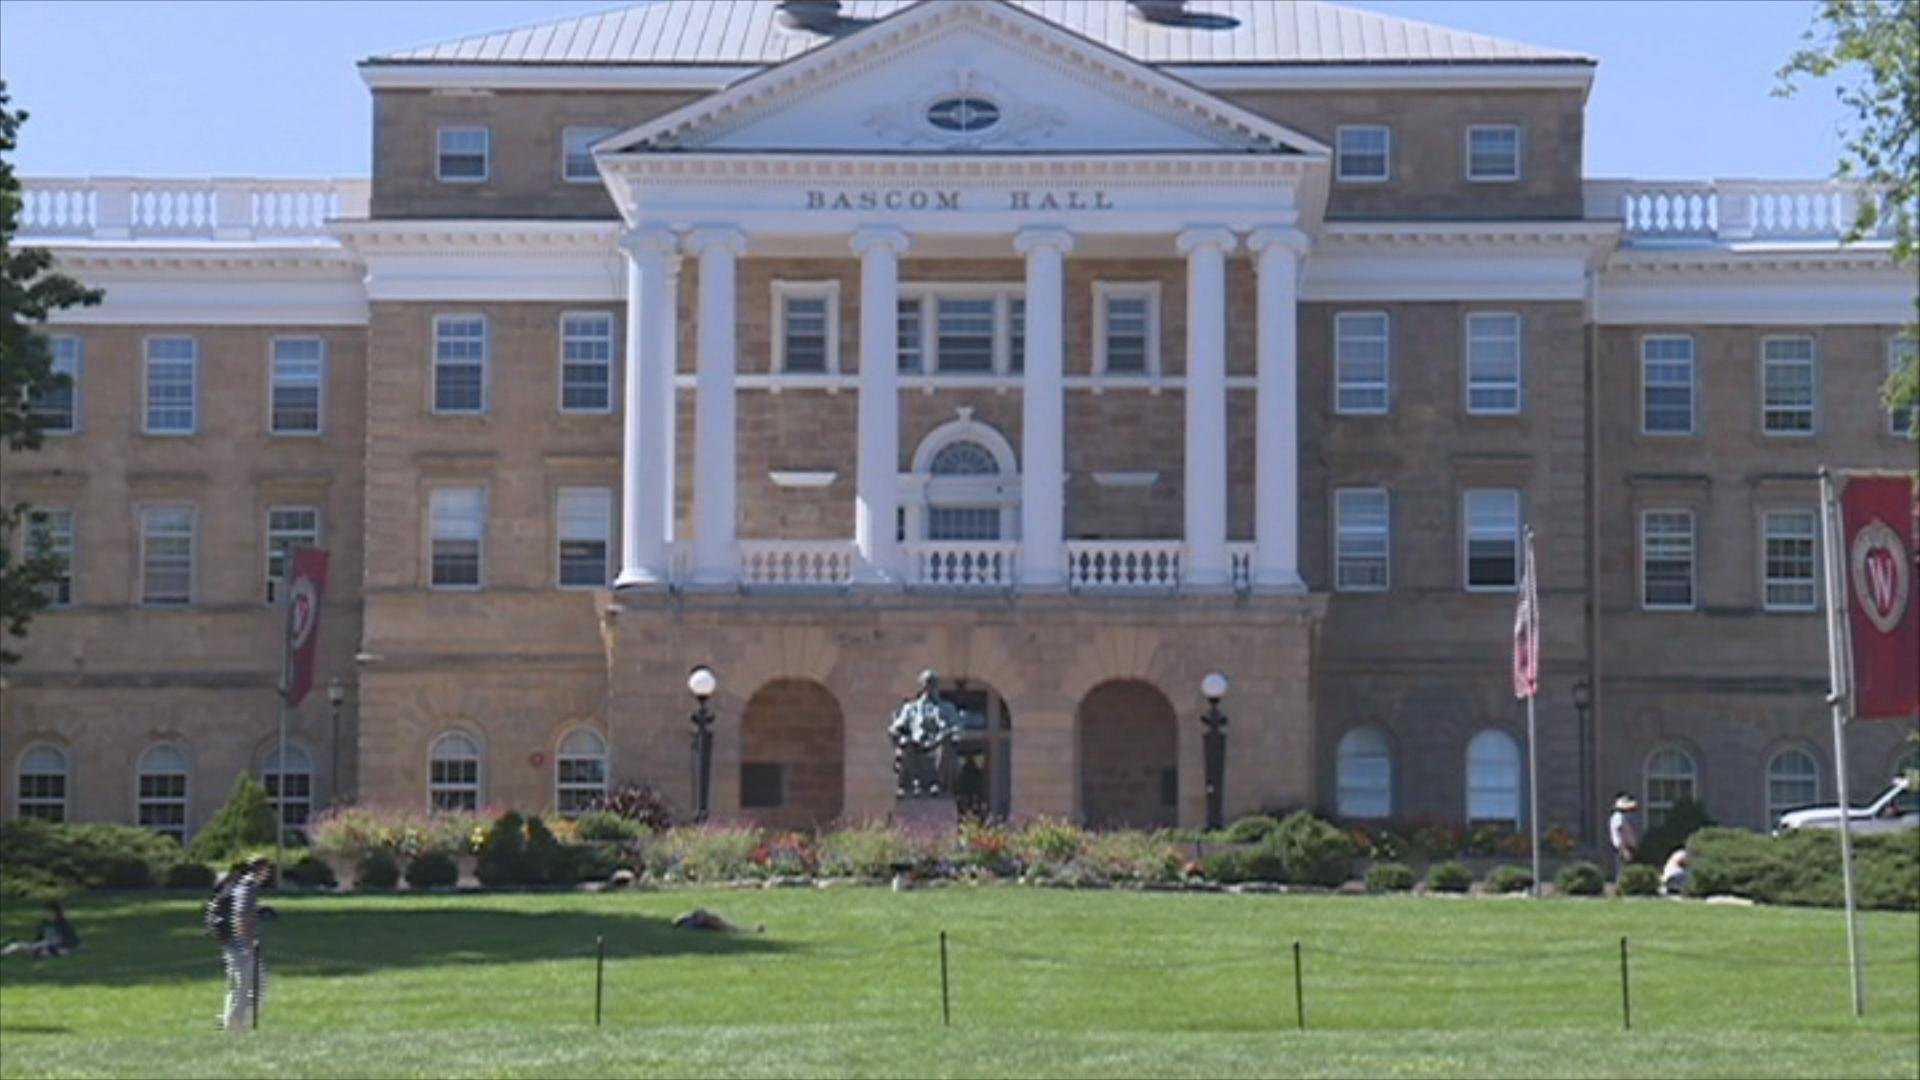 Outside look at Bascom Hall at University of Wisconsin-Madison.